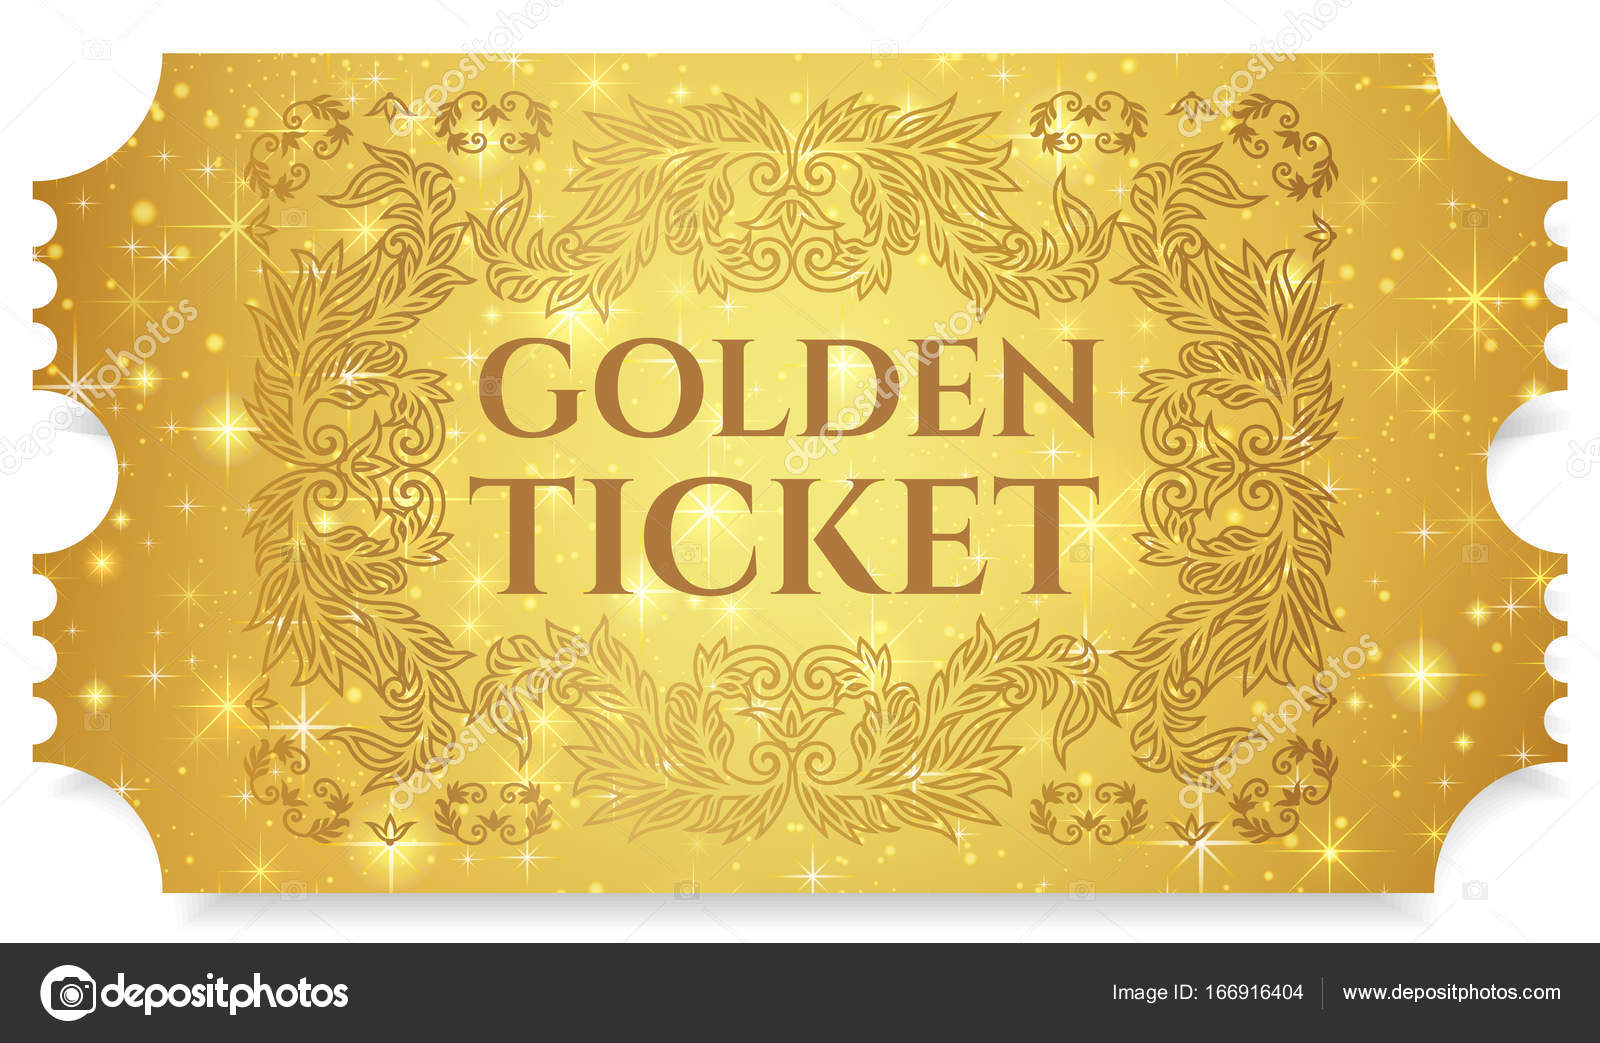 golden ticket background pictures to pin on pinterest